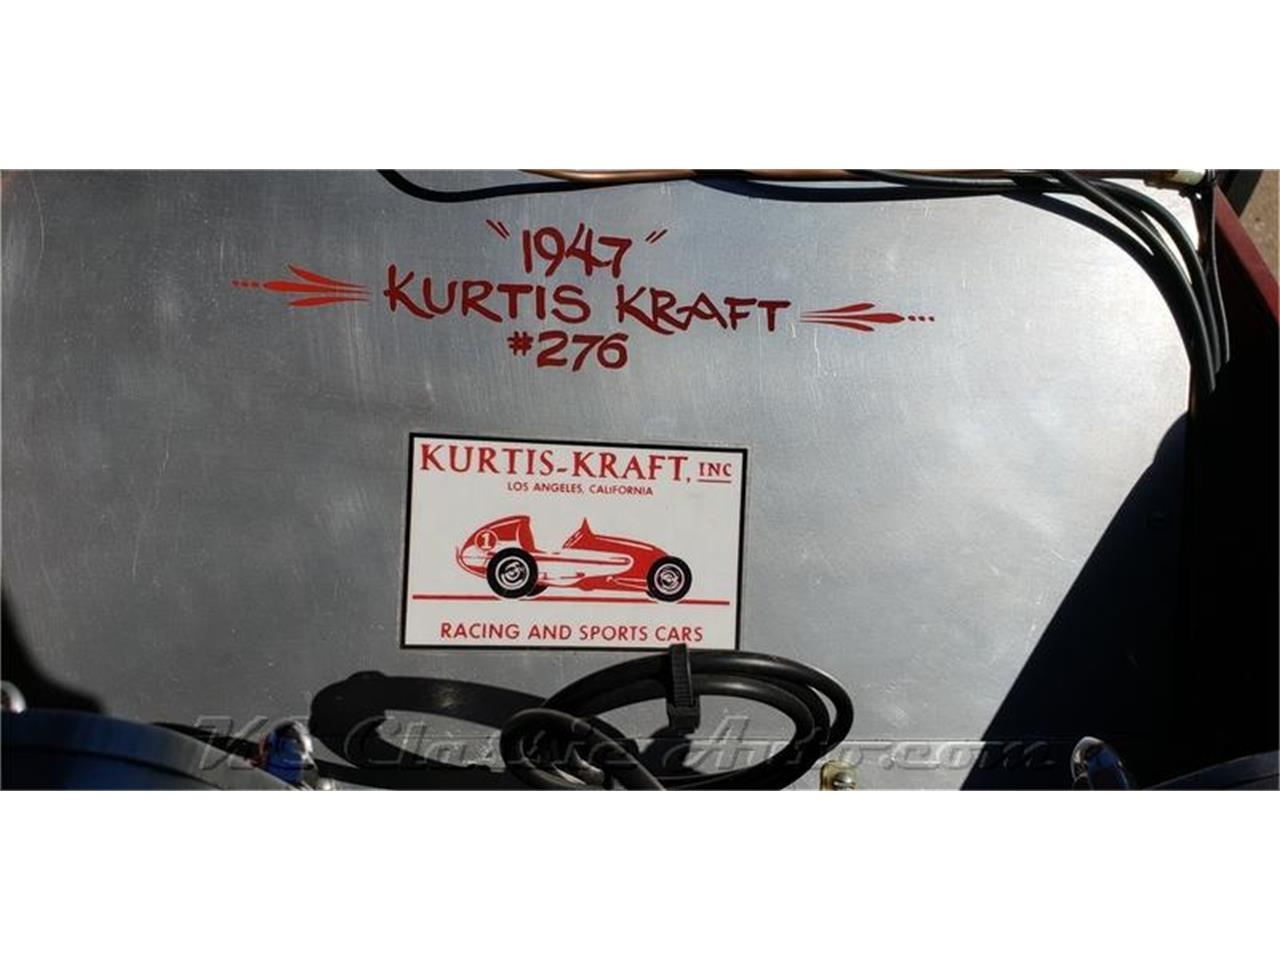 1947 Kurtis-Kraft Midget (CC-1219884) for sale in Lenexa, Kansas